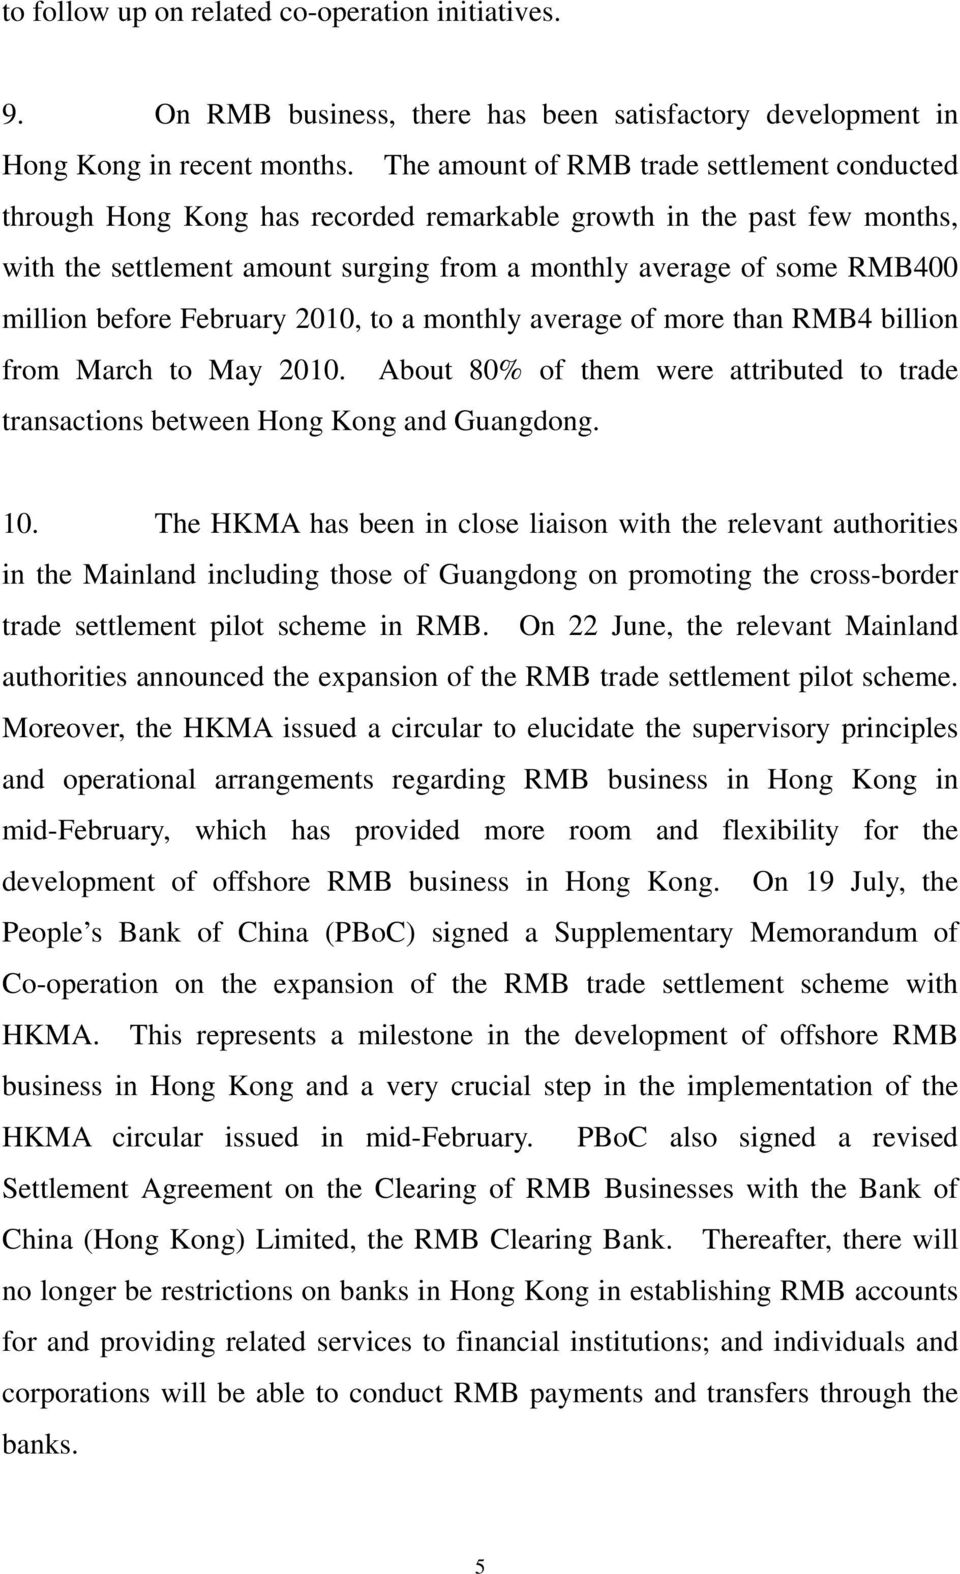 before February 2010, to a monthly average of more than RMB4 billion from March to May 2010. About 80% of them were attributed to trade transactions between Hong Kong and Guangdong. 10.